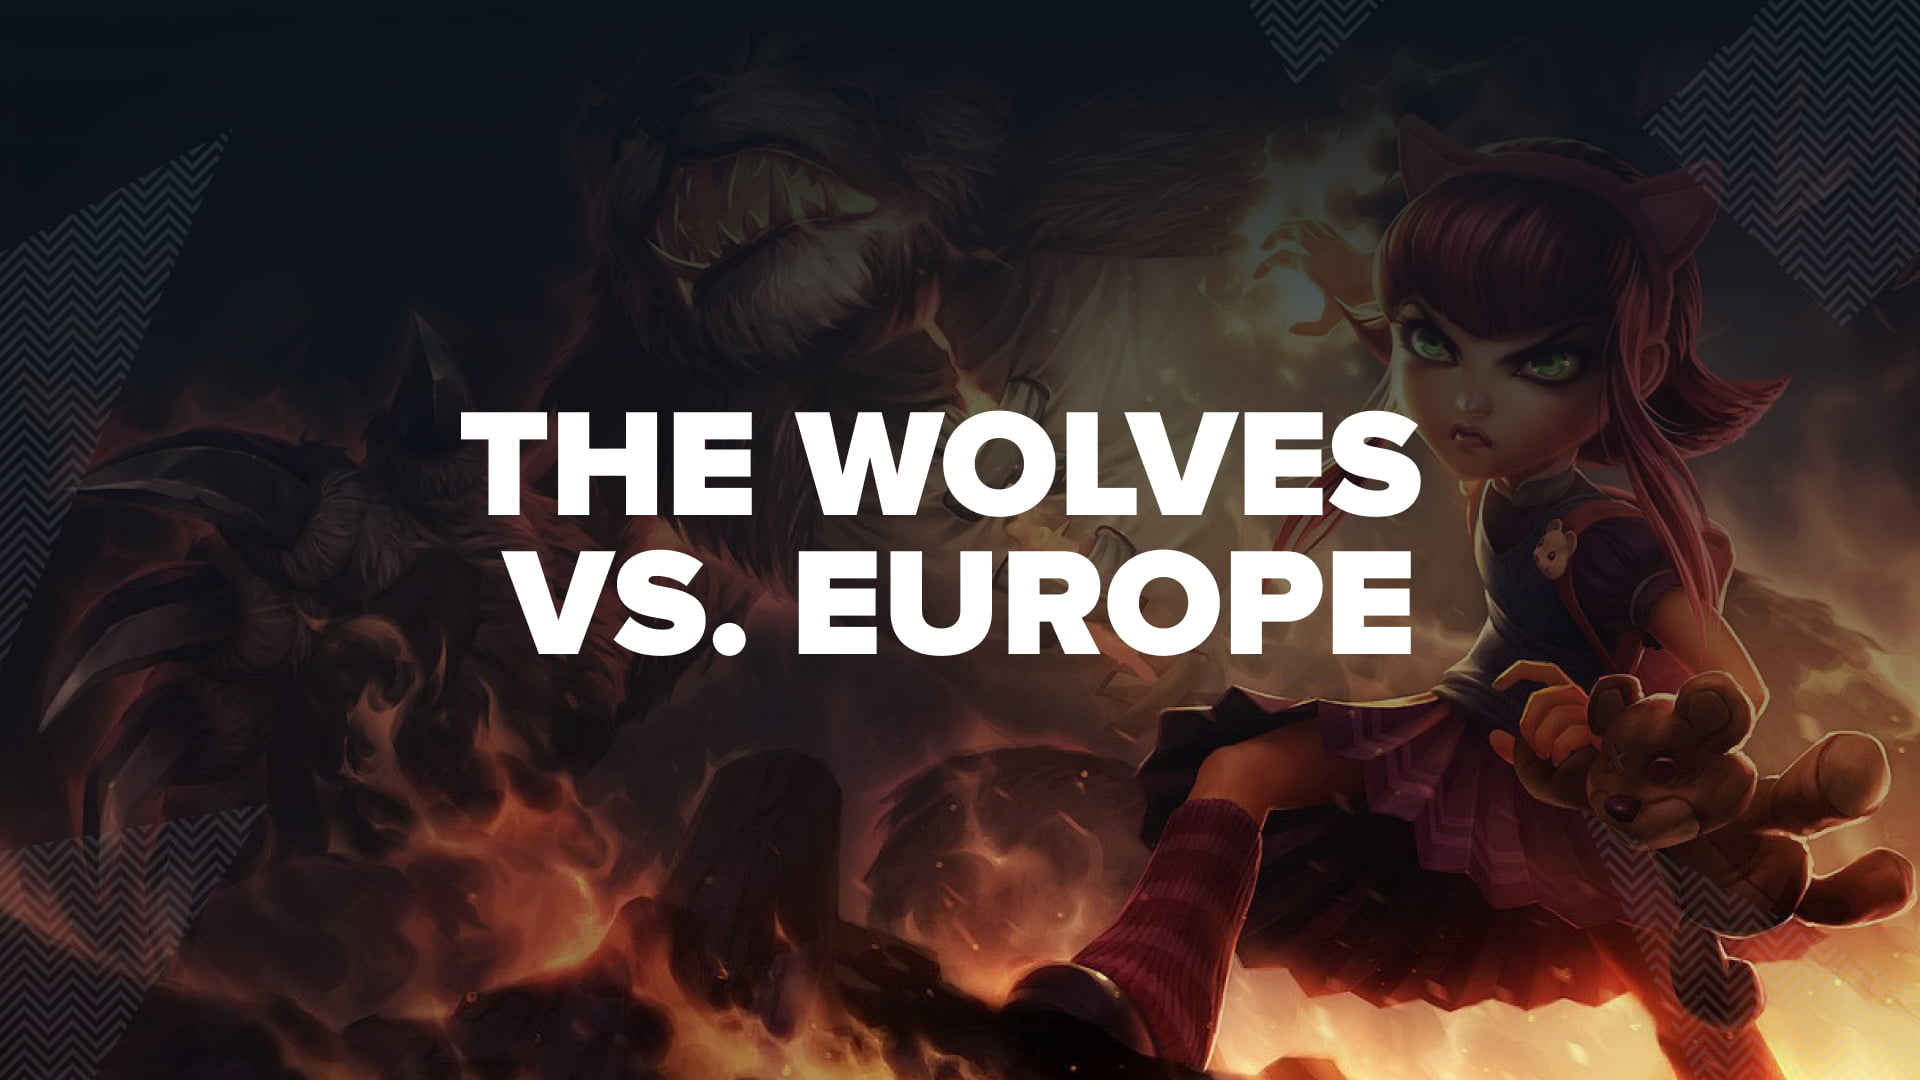 The Wolves take on Europe